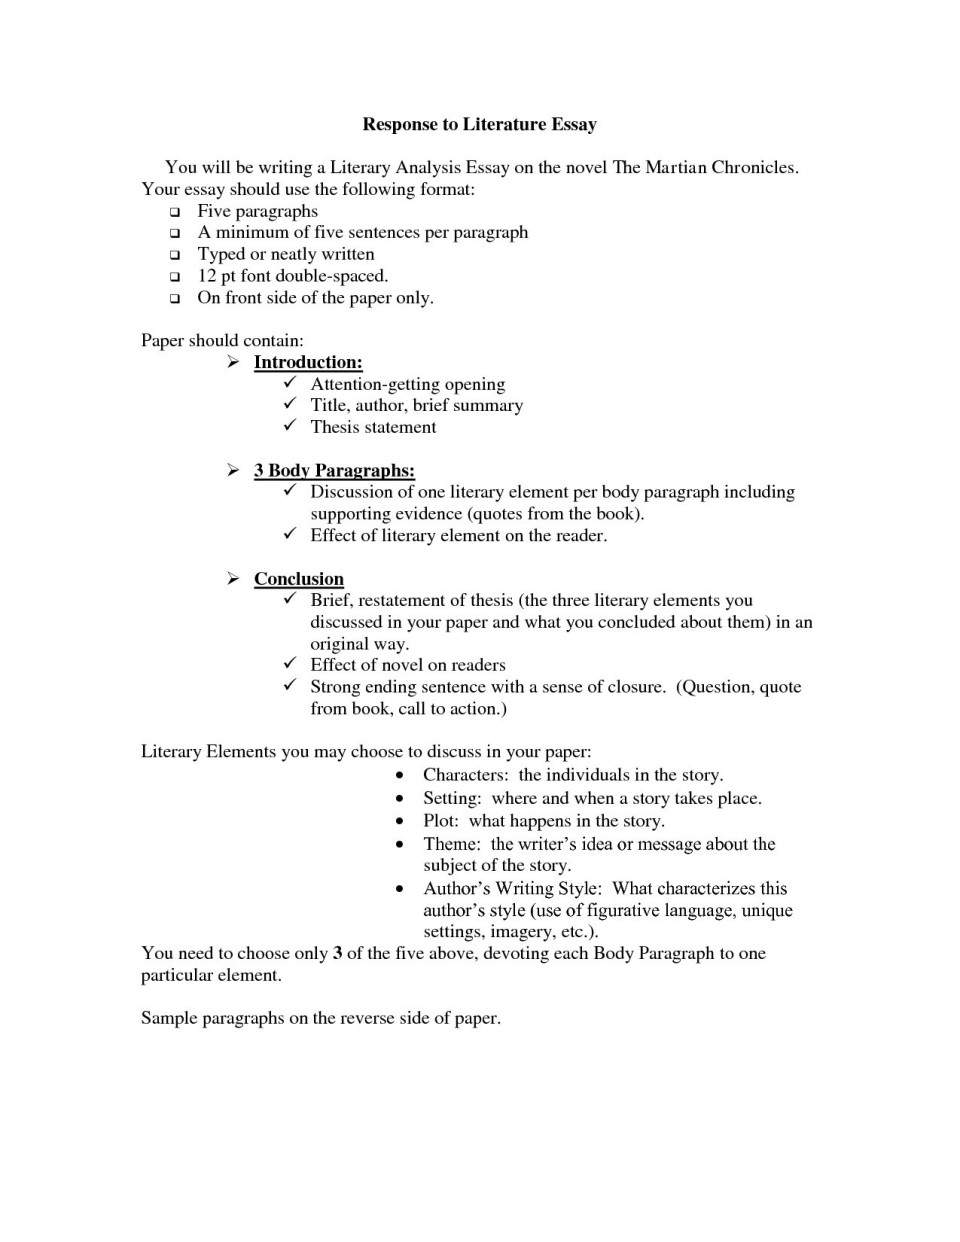 006 Essay Example Brilliant Ideas Of Resume Cv Cover Letter Poetry Reflection Paper Poem Parison Creative Explication Formidable Trifles On Gender Roles Pdf Examples 960